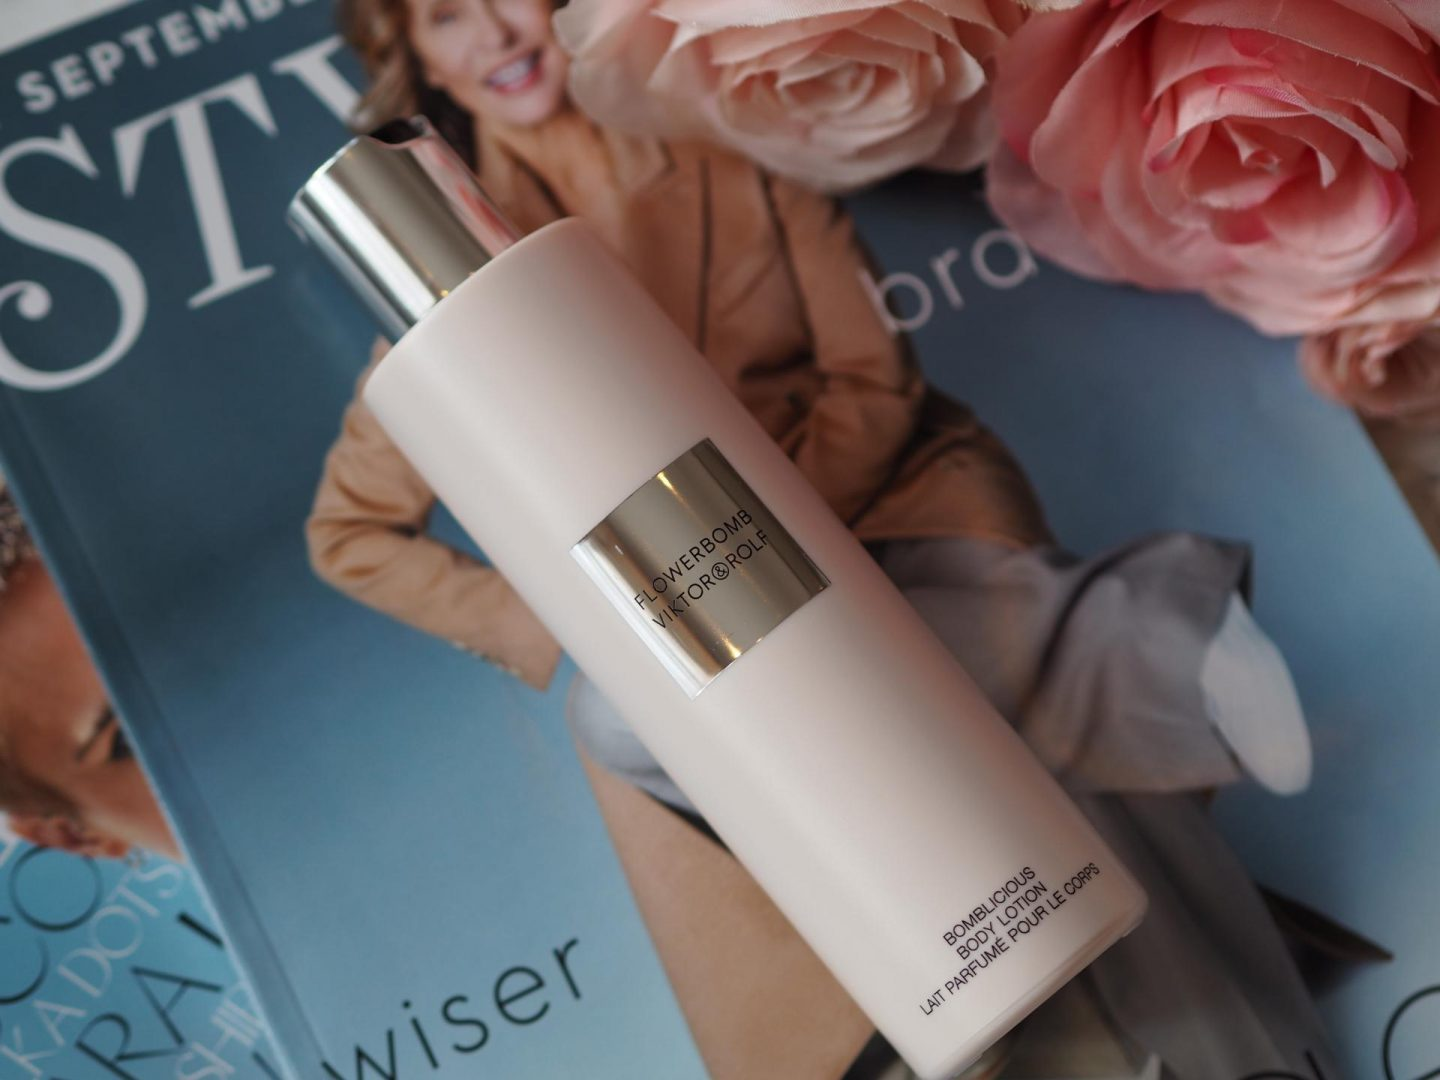 Feel Good Beauty - Product: Viktor & Rolf Flowerbomb Perfumed Body Lotion